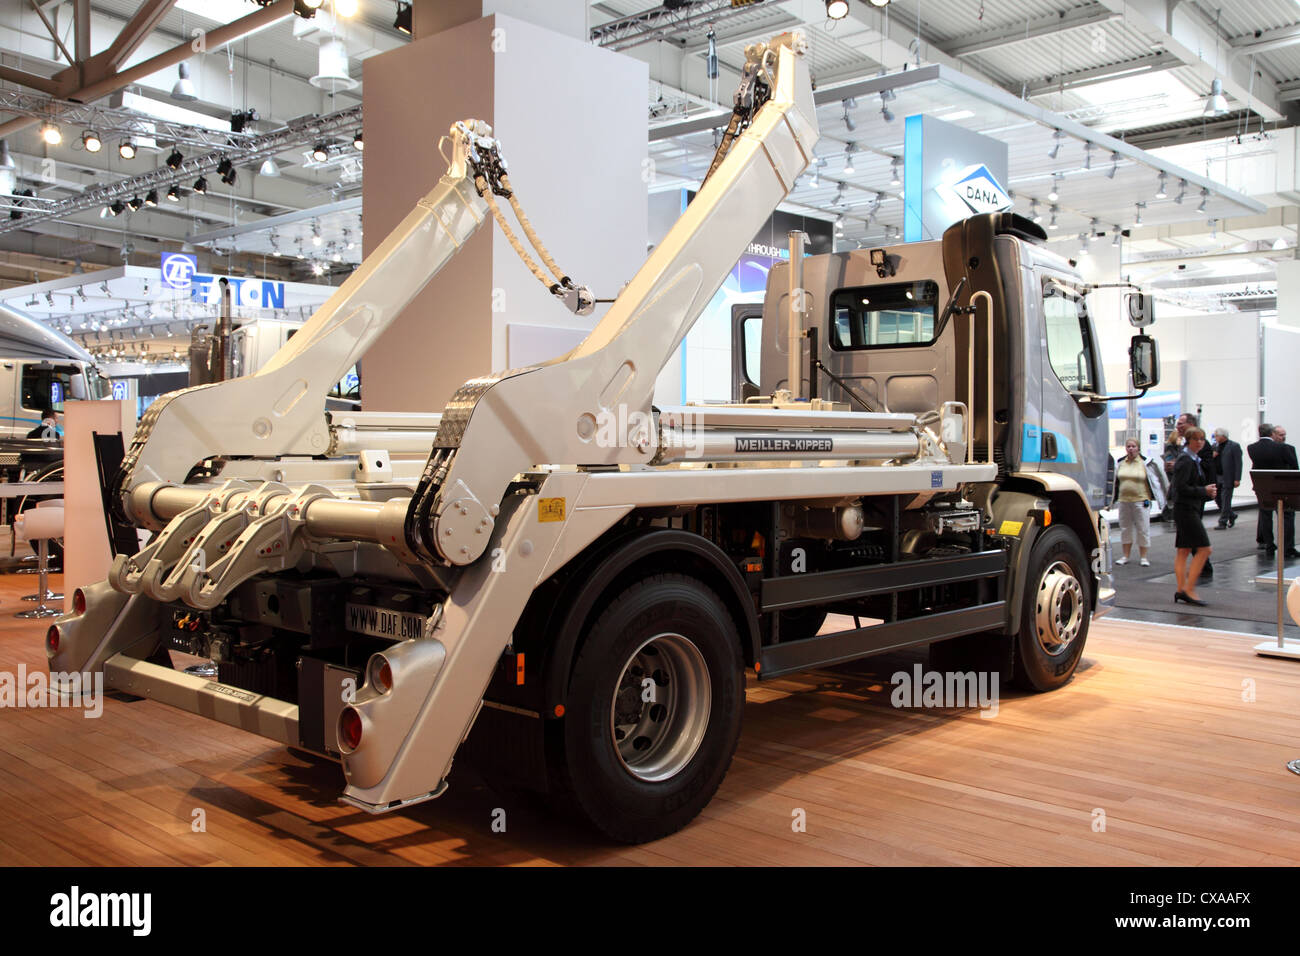 Garbage Collection Truck from Meiler-Kipper at the International Motor Show - Stock Image